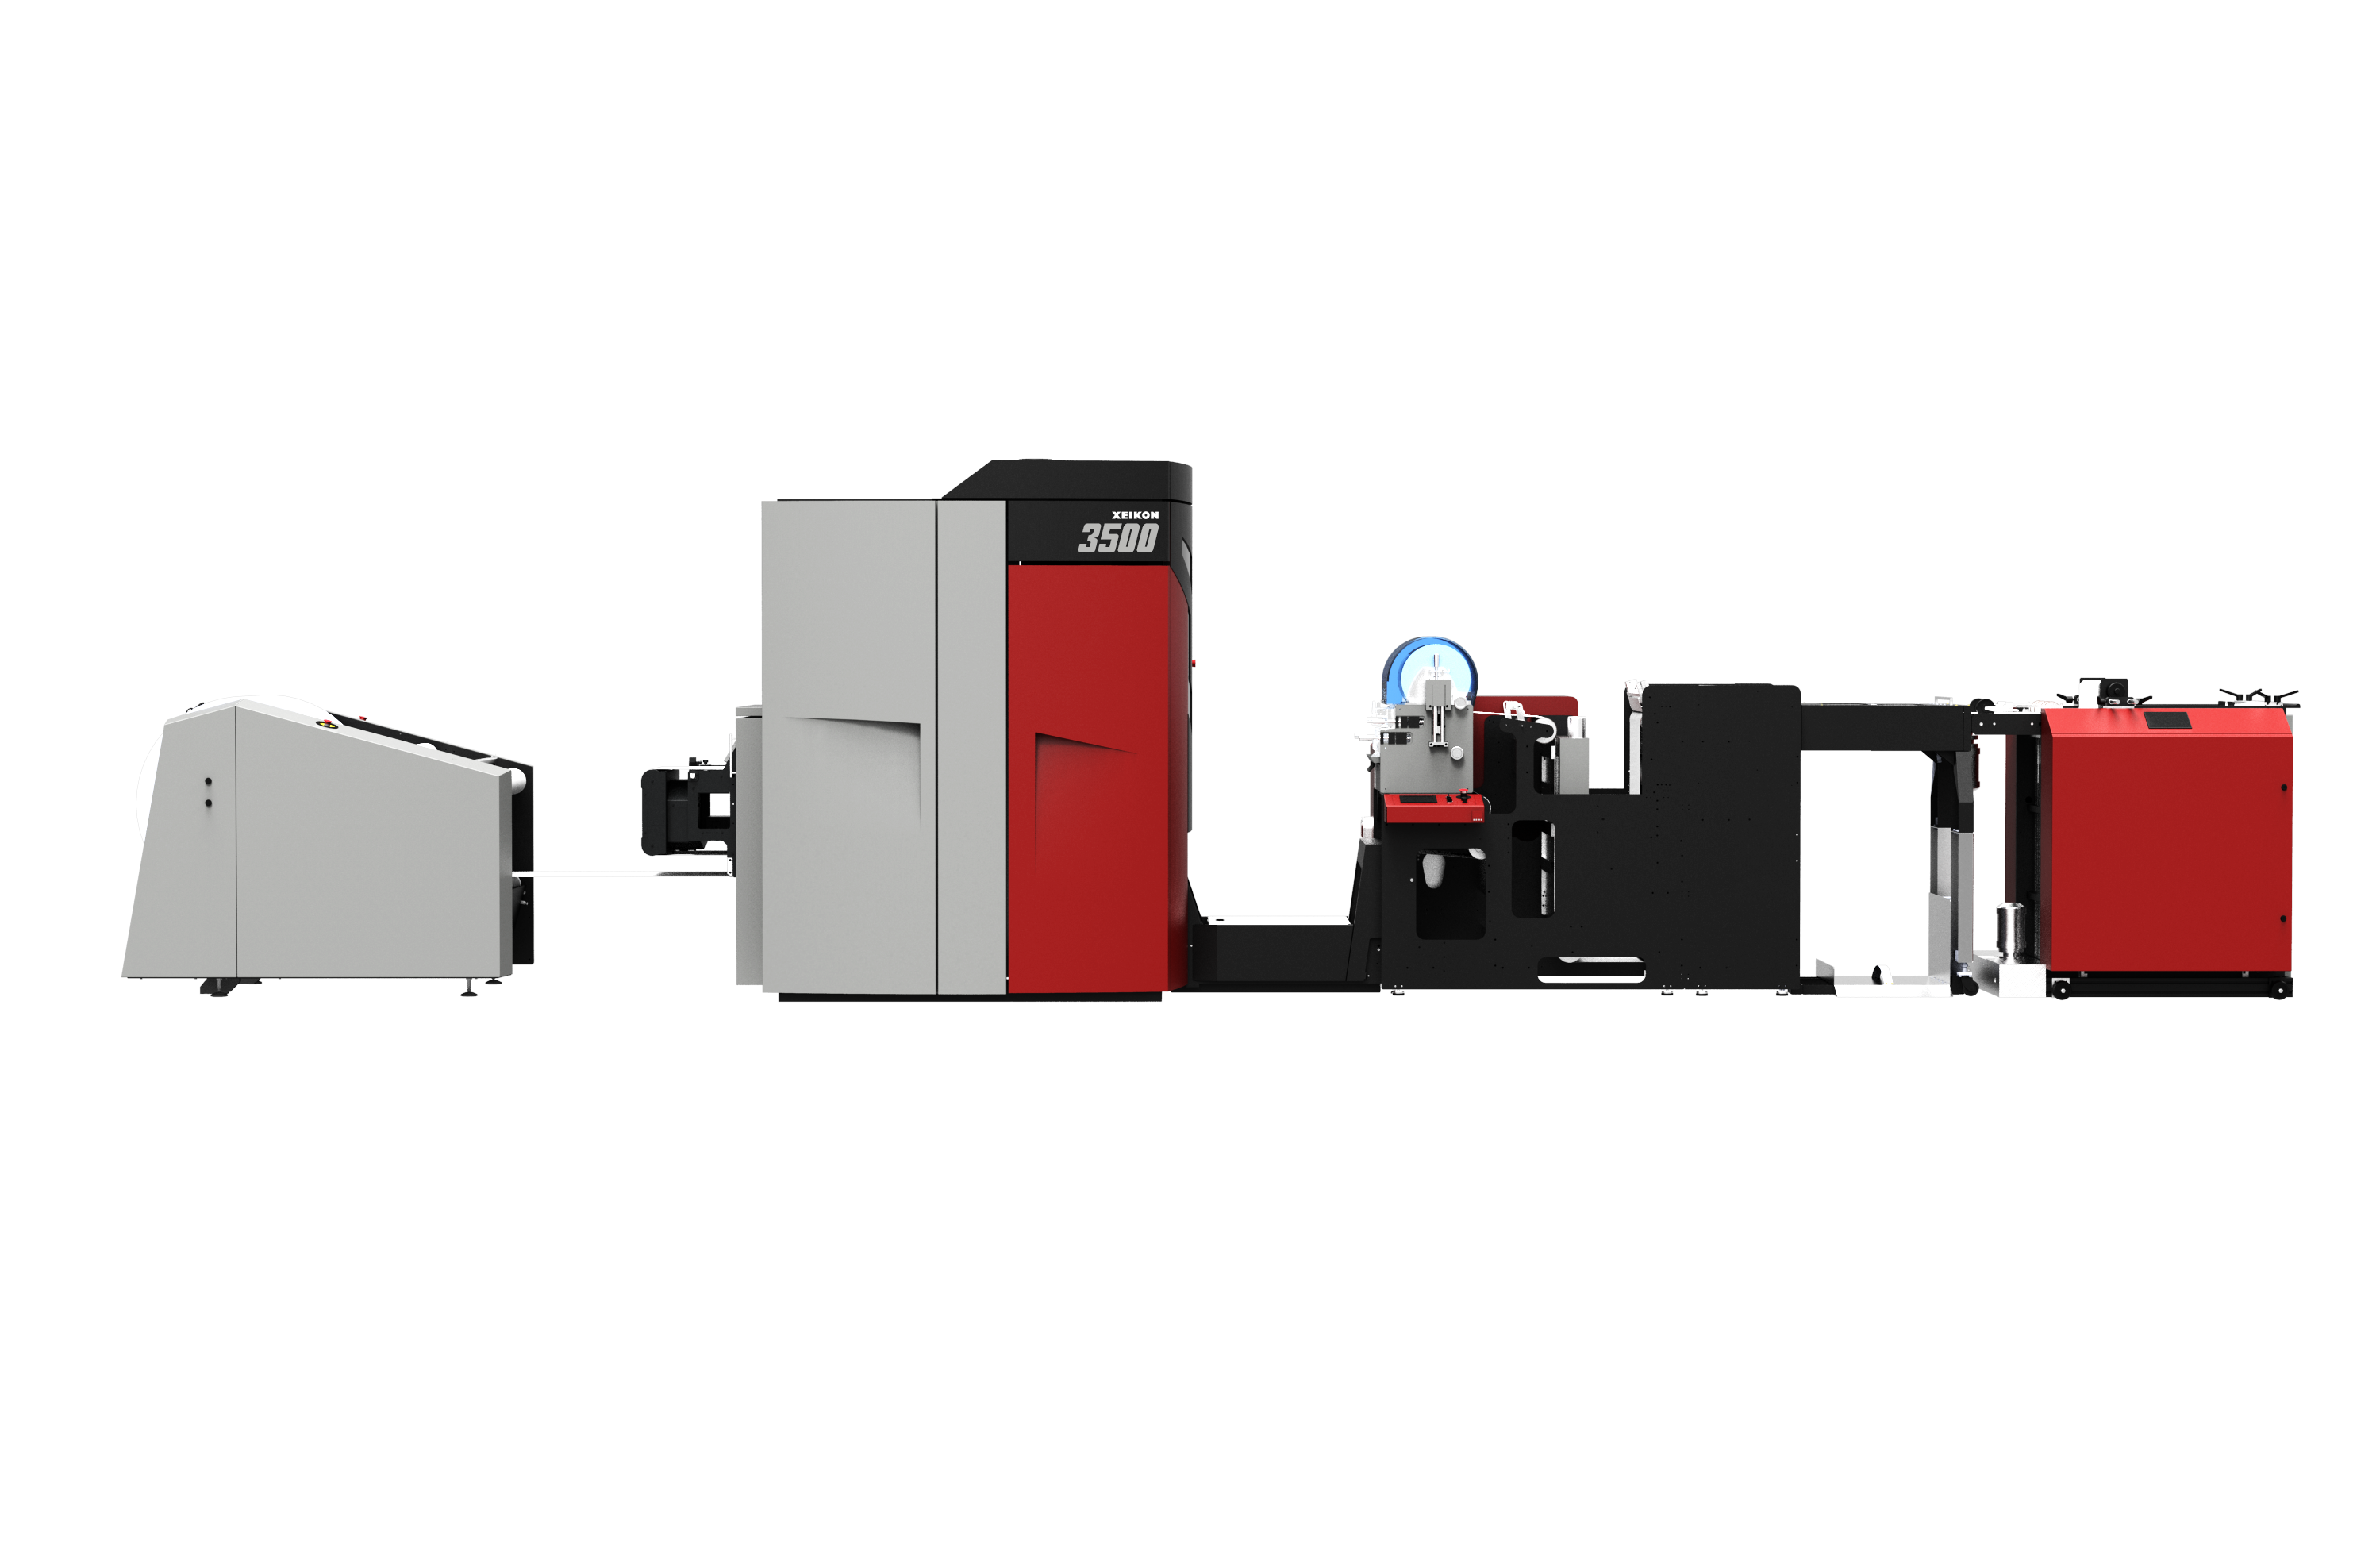 Digital production solution with a Xeikon 3500